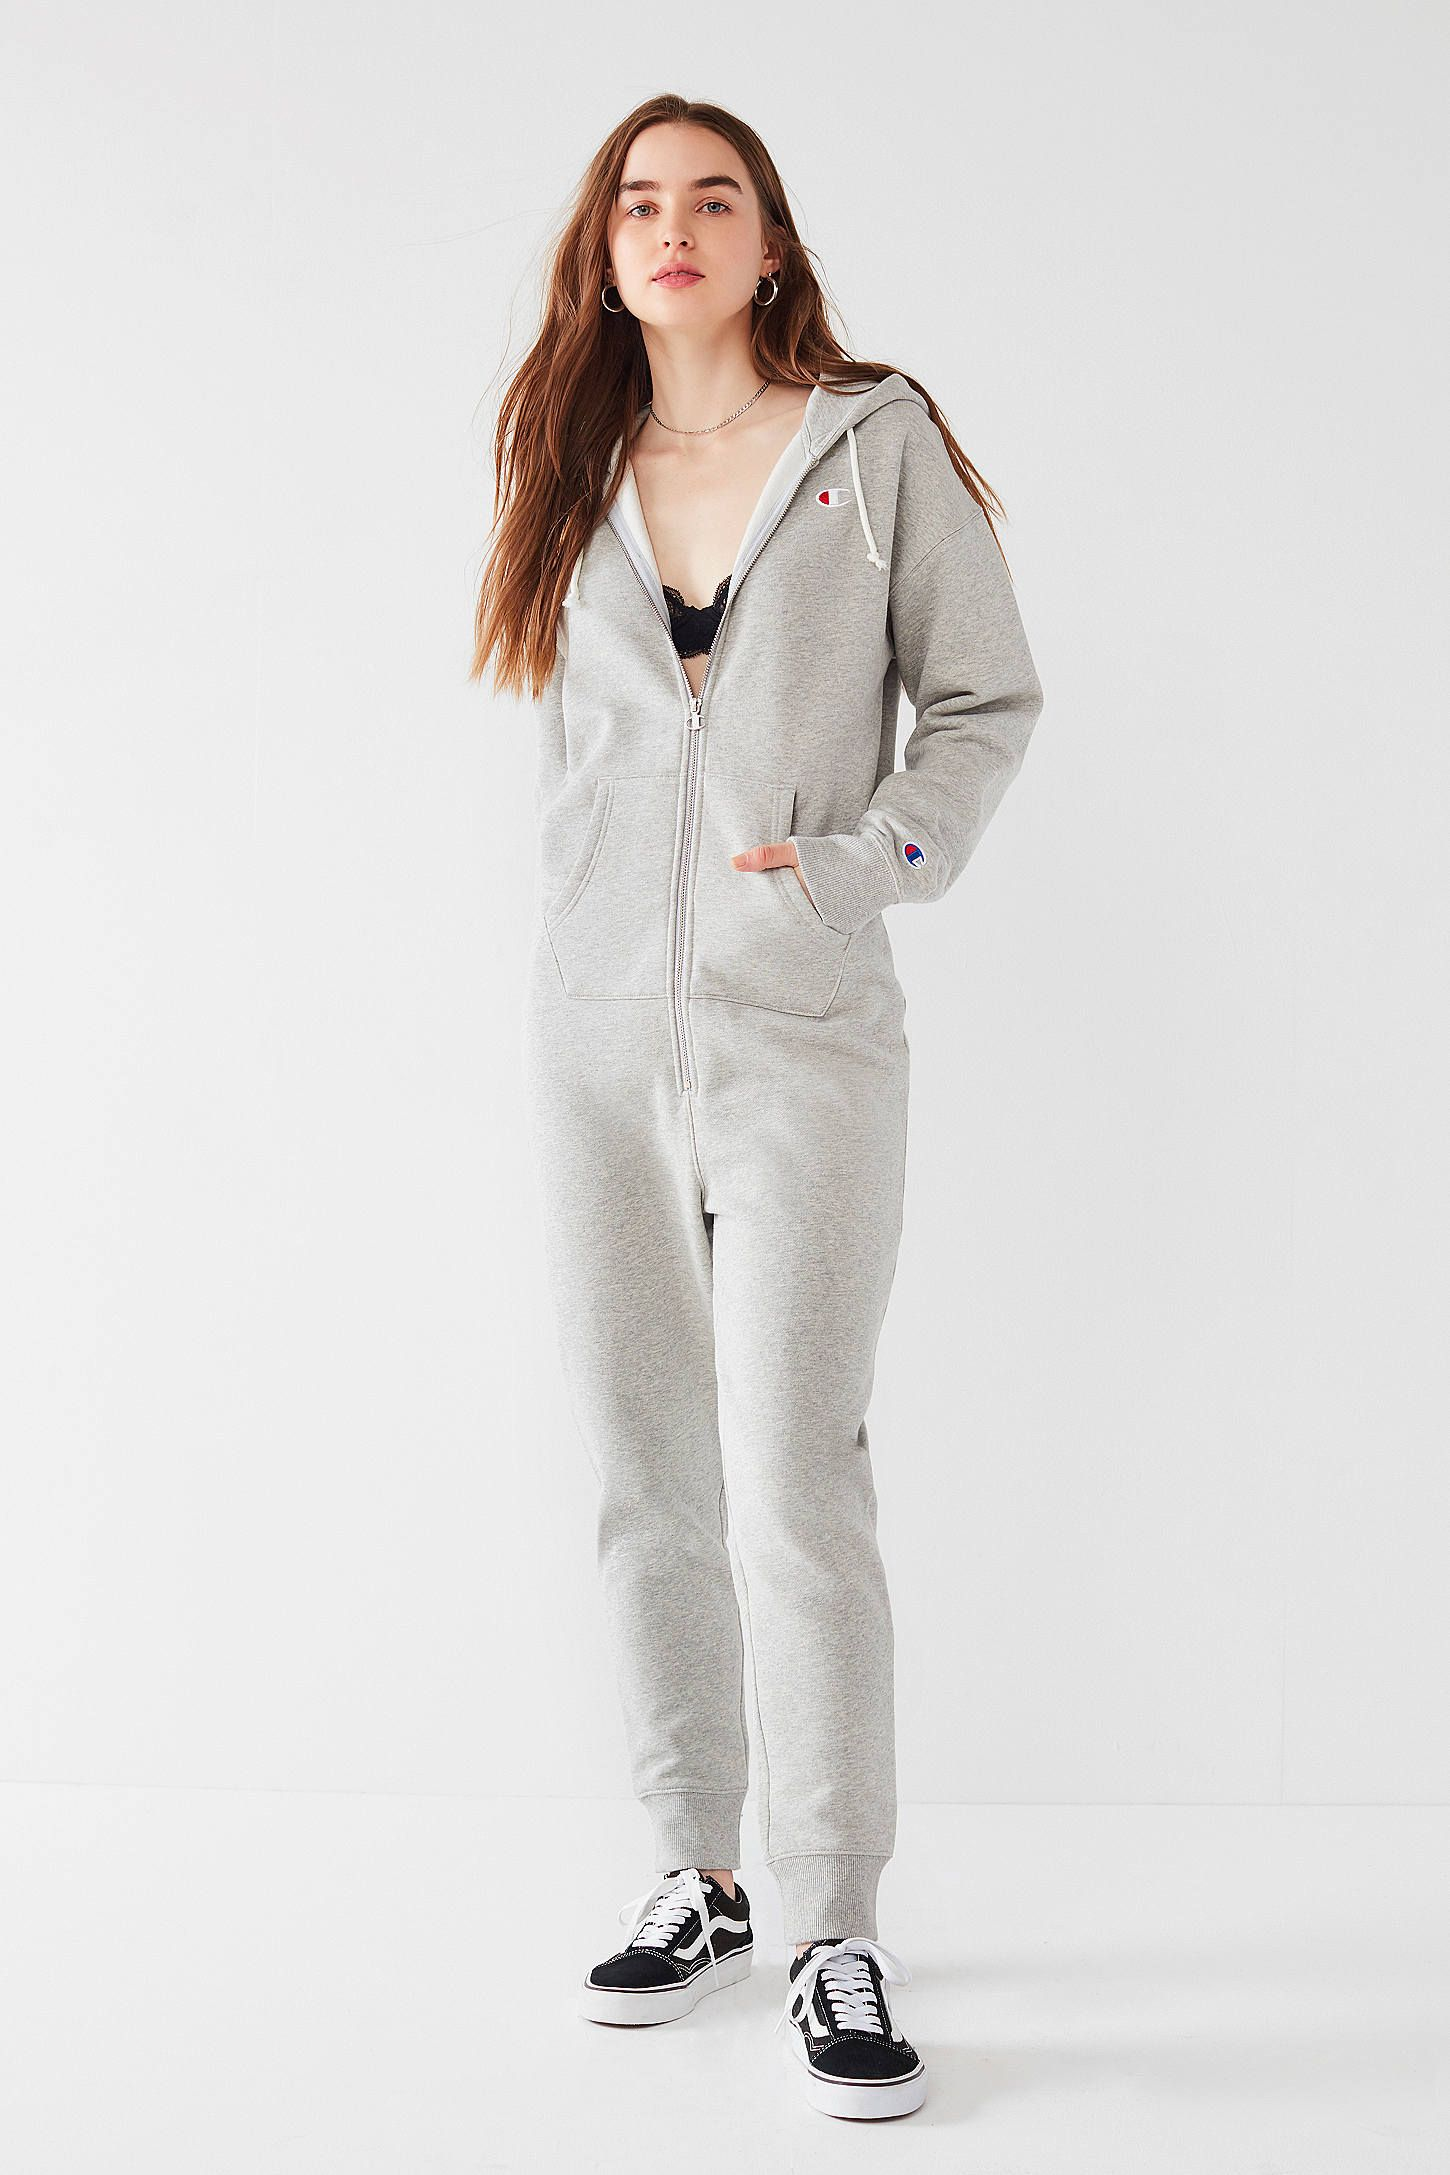 051a51bee64d Shop Champion   UO Sweatshirt Jumpsuit at Urban Outfitters today. We carry  all the latest styles